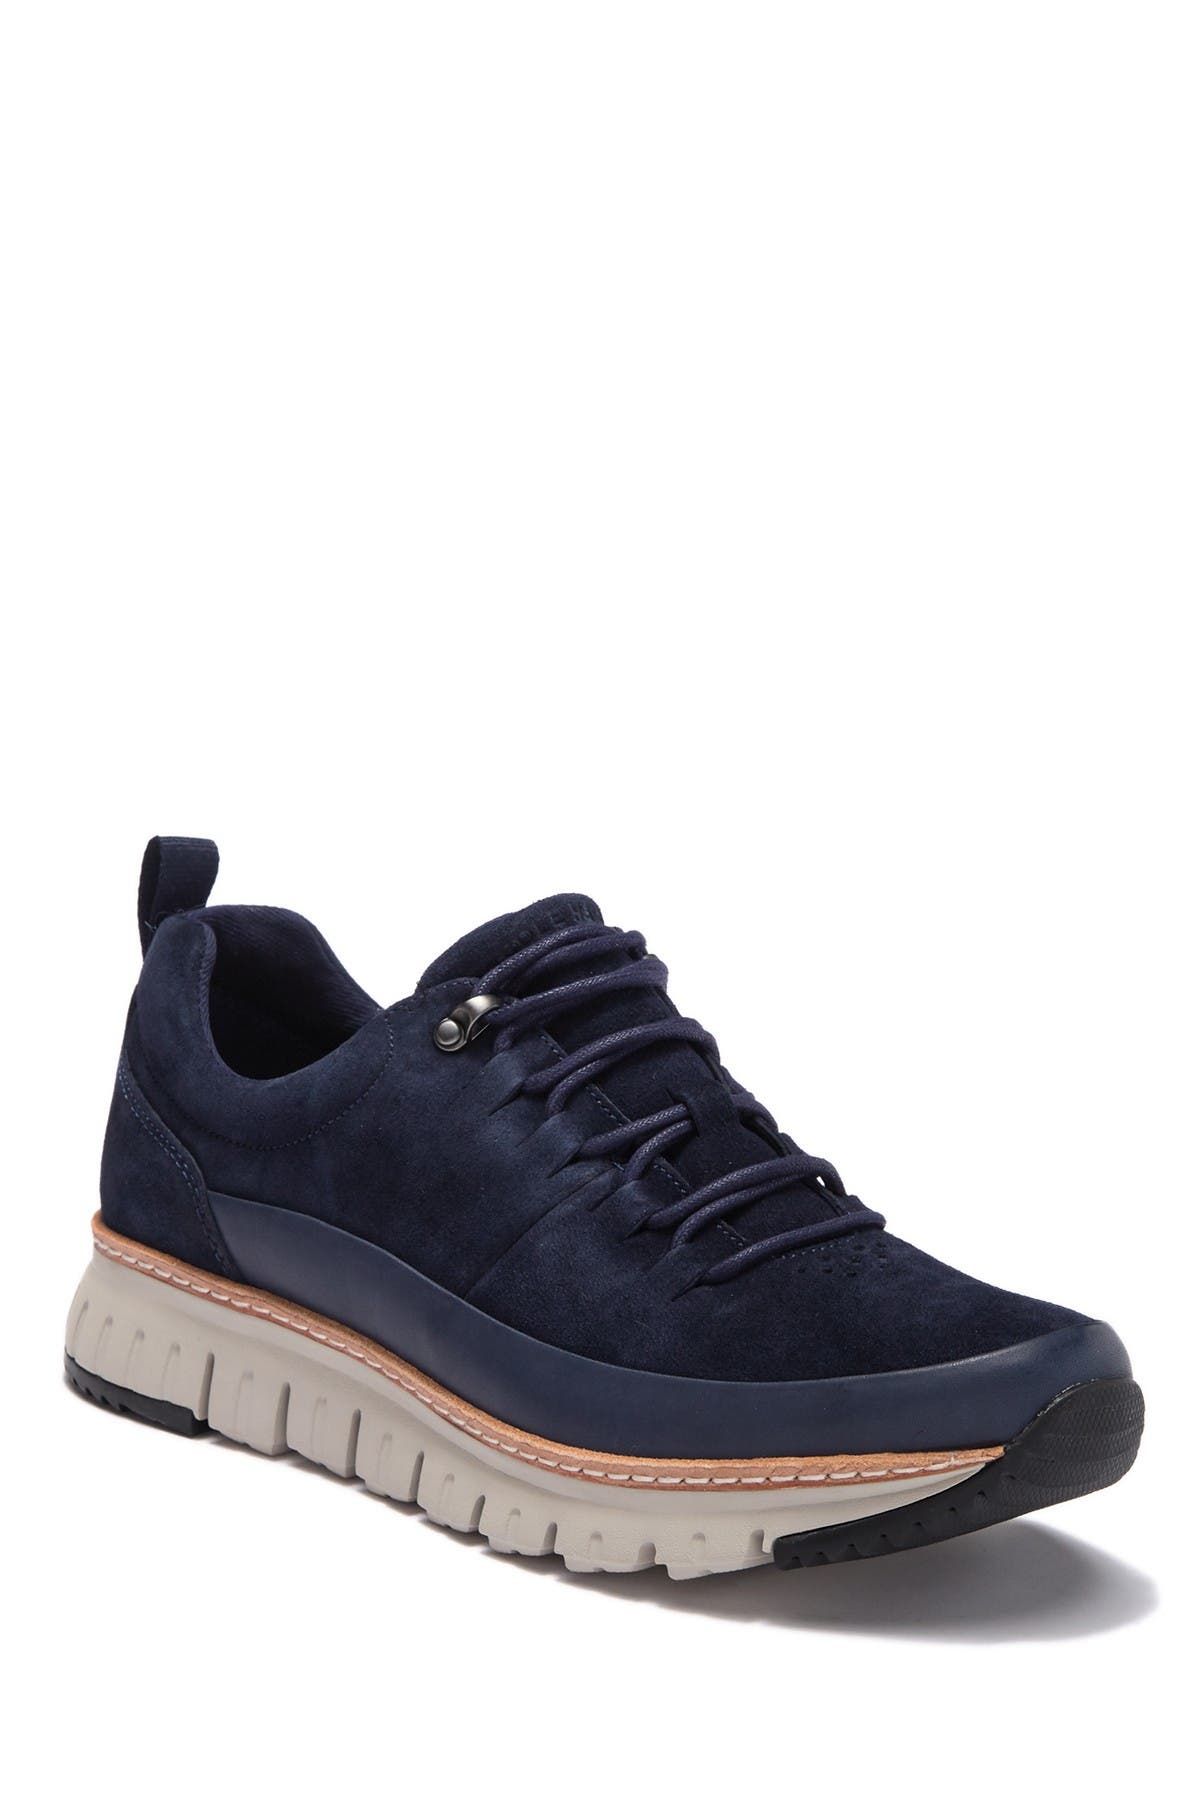 Cole Haan | Zerogrand Suede Leather